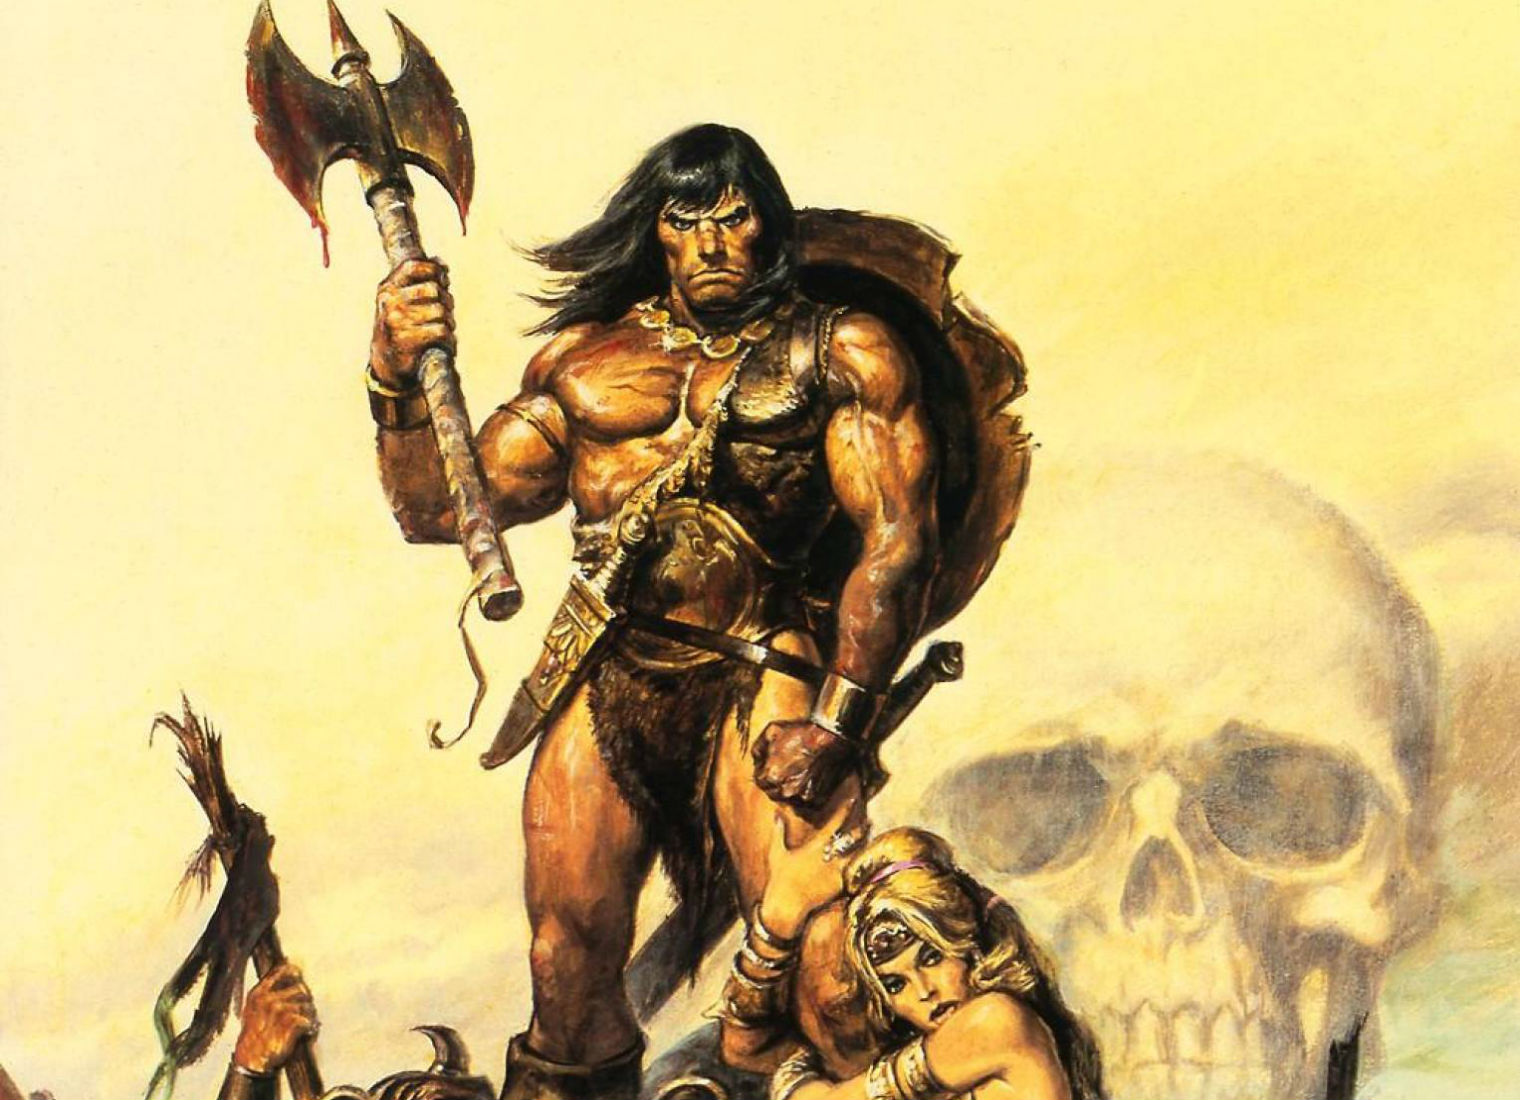 CONAN THE BARBARIAN gw wallpaper 1520x1100 140180 WallpaperUP 1520x1100